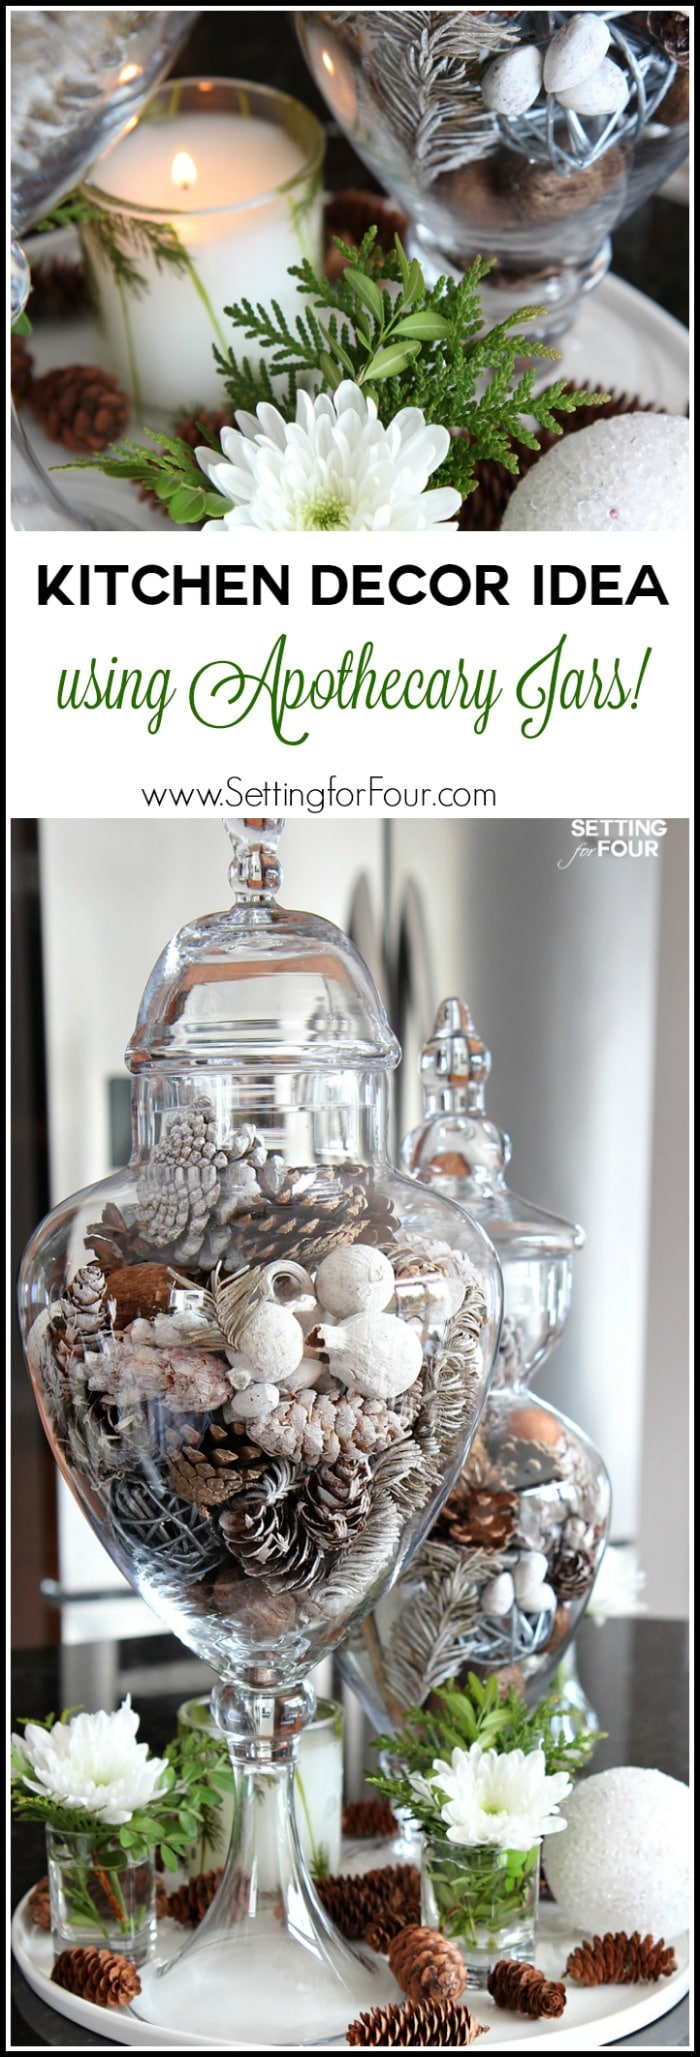 10 minute kitchen decor idea setting for four decorate your kitchen in a jiffy with a beautiful centerpiece using apothecary jars apothecary jars reviewsmspy